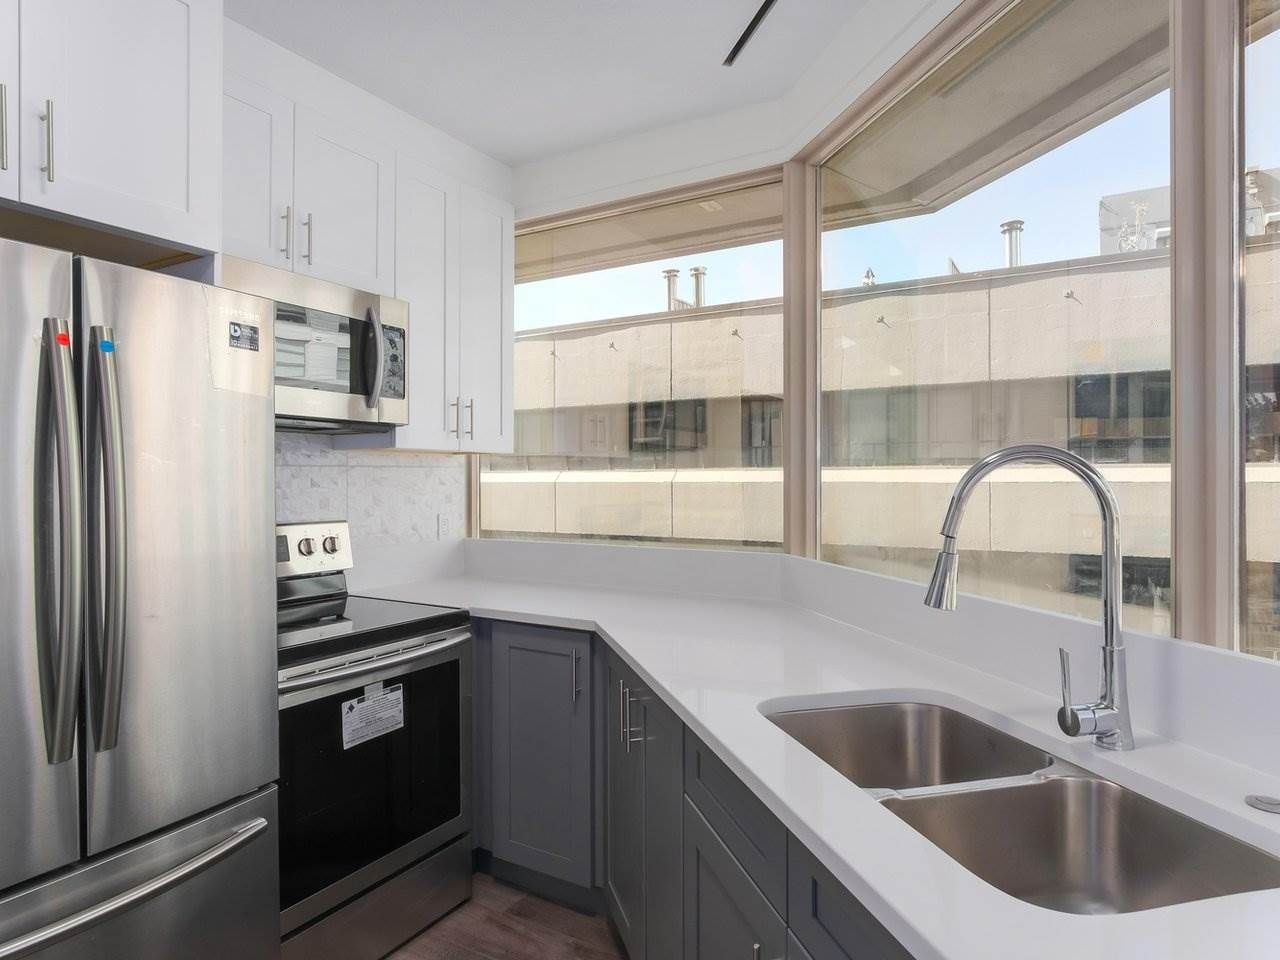 """Main Photo: 911 1177 HORNBY Street in Vancouver: Downtown VW Condo for sale in """"LONDON PLACE"""" (Vancouver West)  : MLS®# R2403414"""